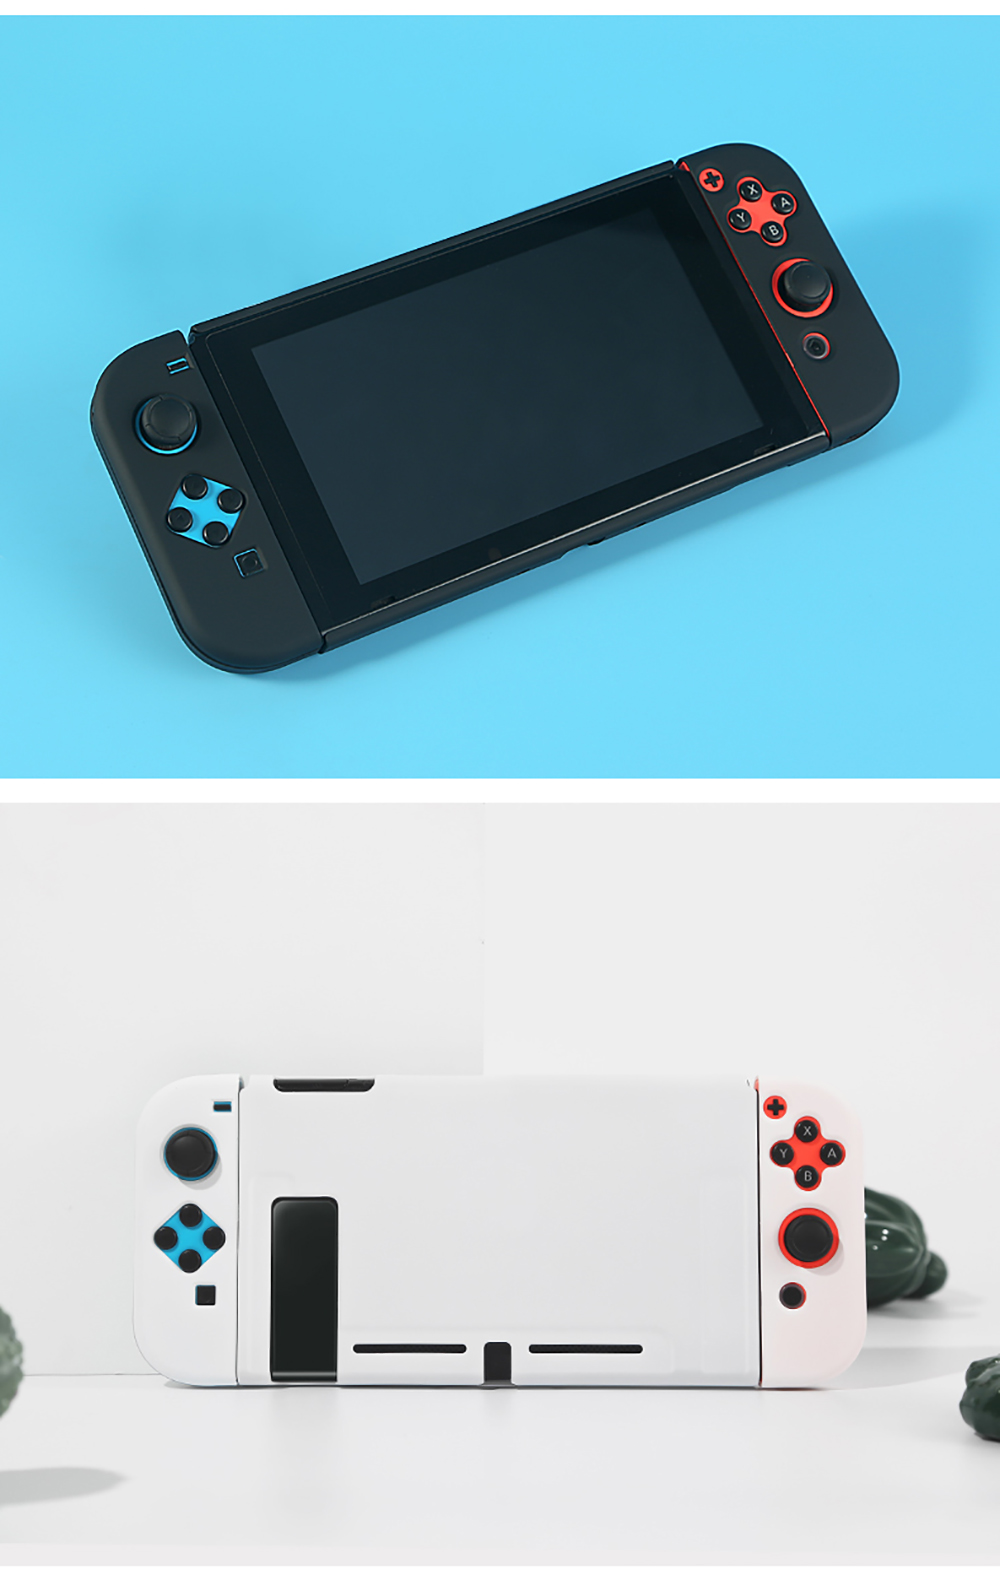 Protective Case Joy Con Controller Shell Hard Housing Full Cover Shell For Nintend Switch (6)